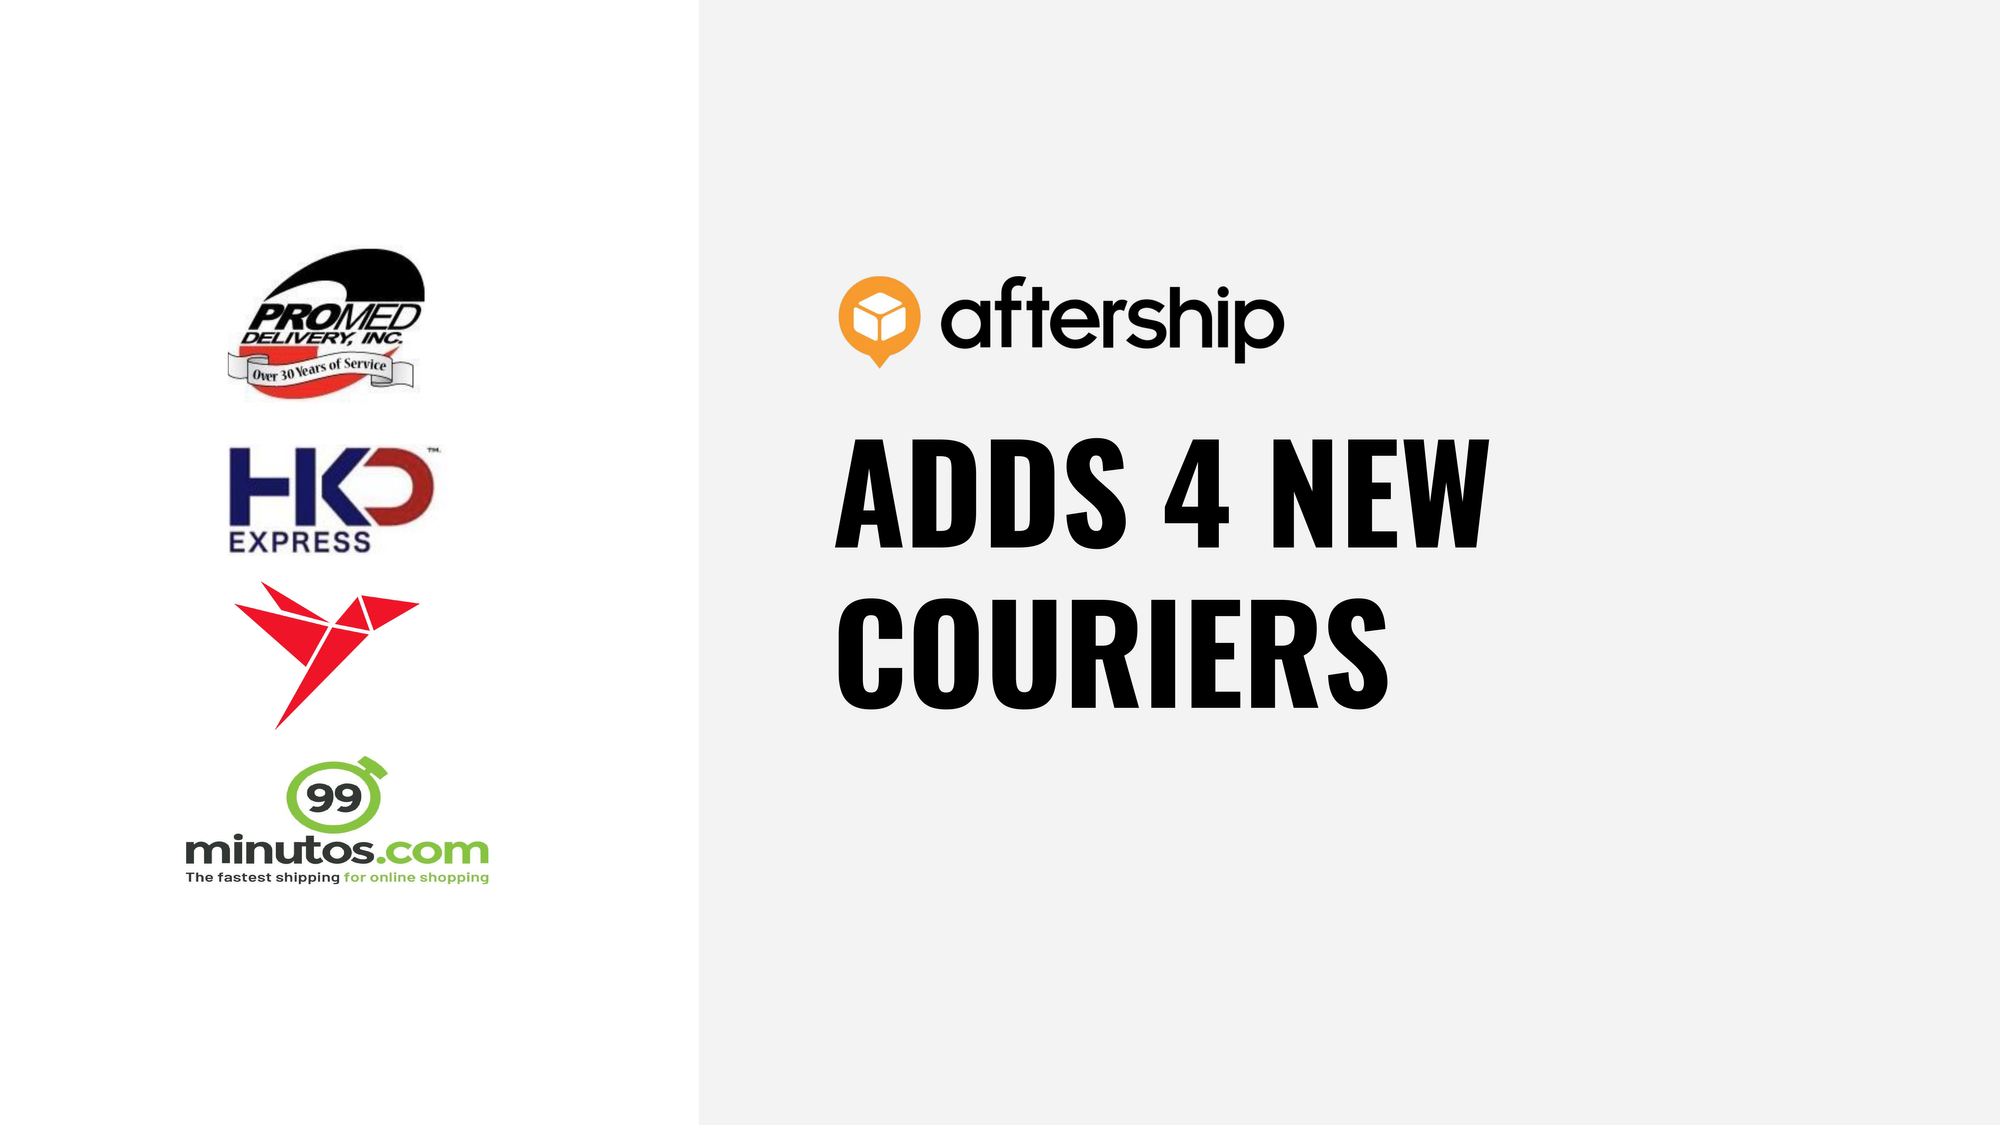 AfterShip adds 4 new couriers this week (9 Nov 2020 to 13 Nov 2020)